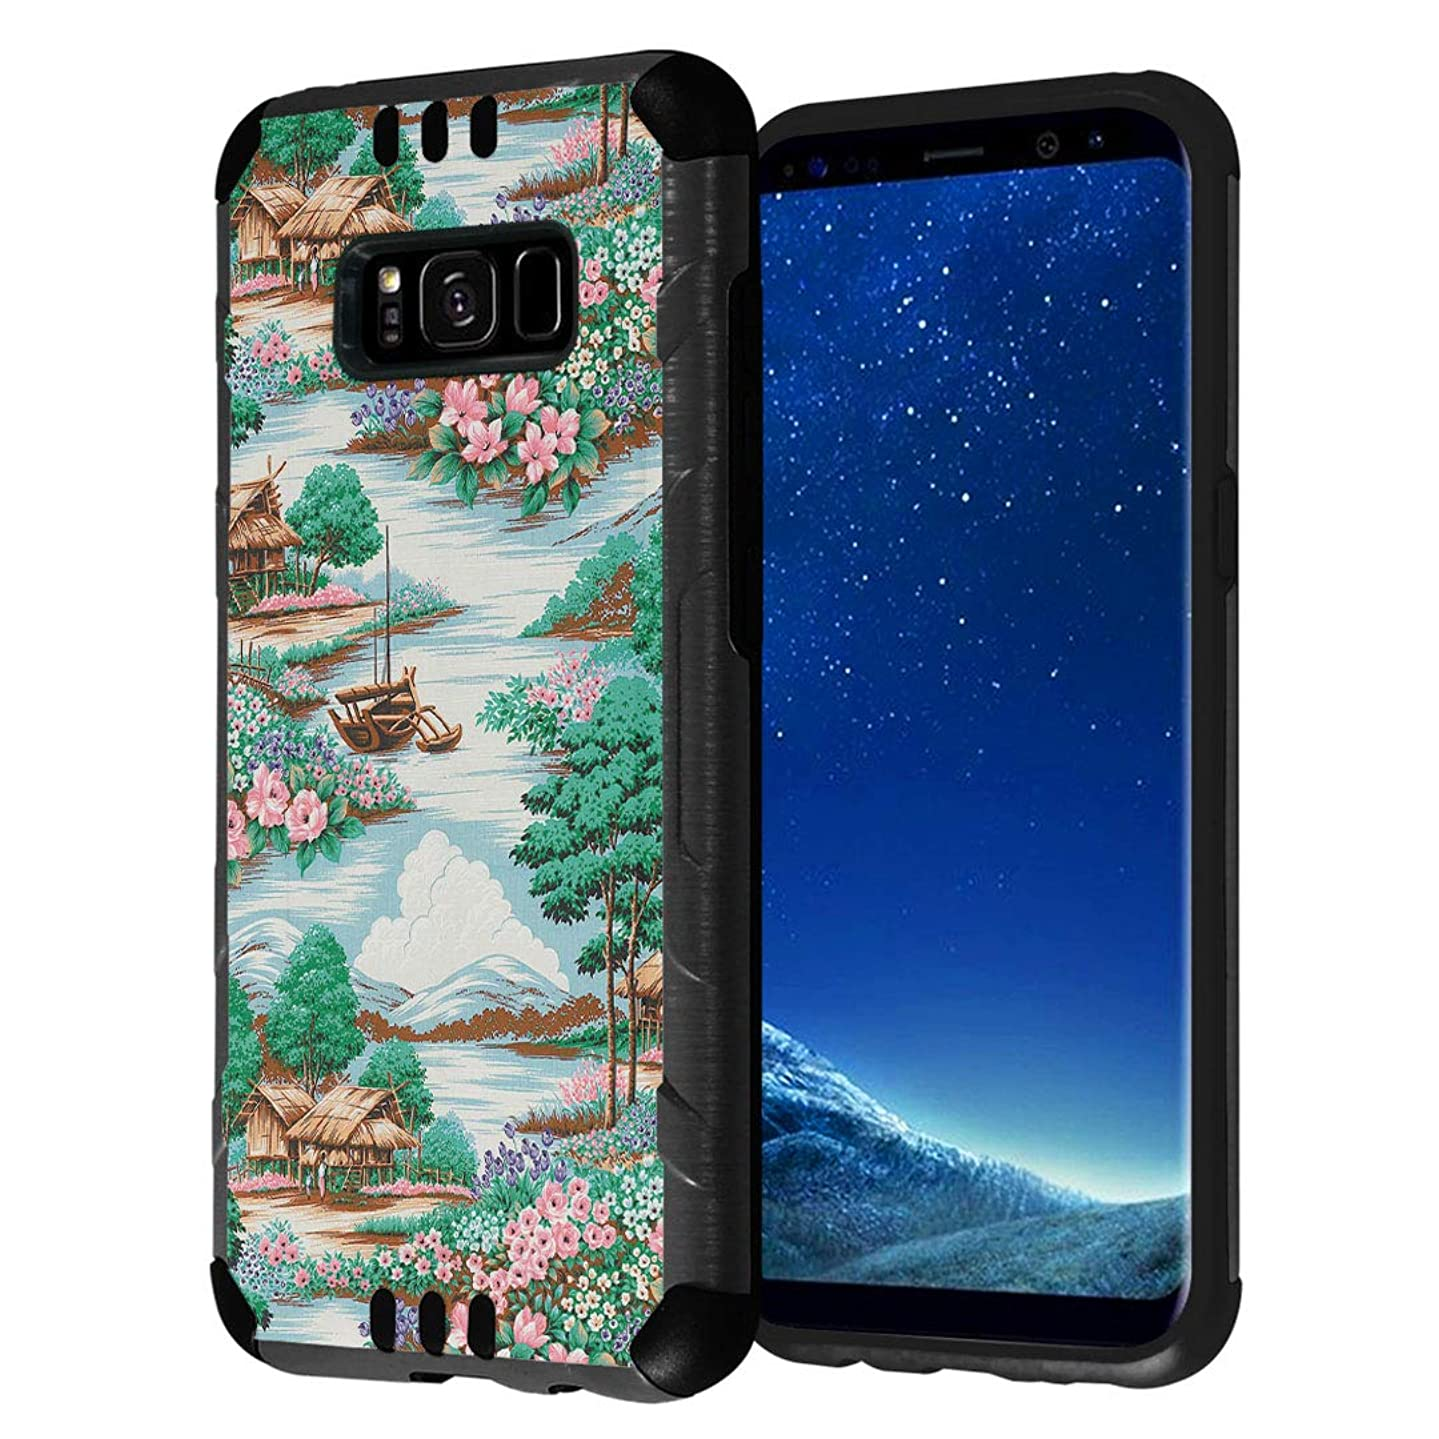 Capsule Case Compatible with Galaxy S8 [Hybrid Fusion Dual Layer Slick Armor Cushion Case Black] for Samsung Galaxy S8 SM-G950 SPHG950 - (Bamboo Lodge)